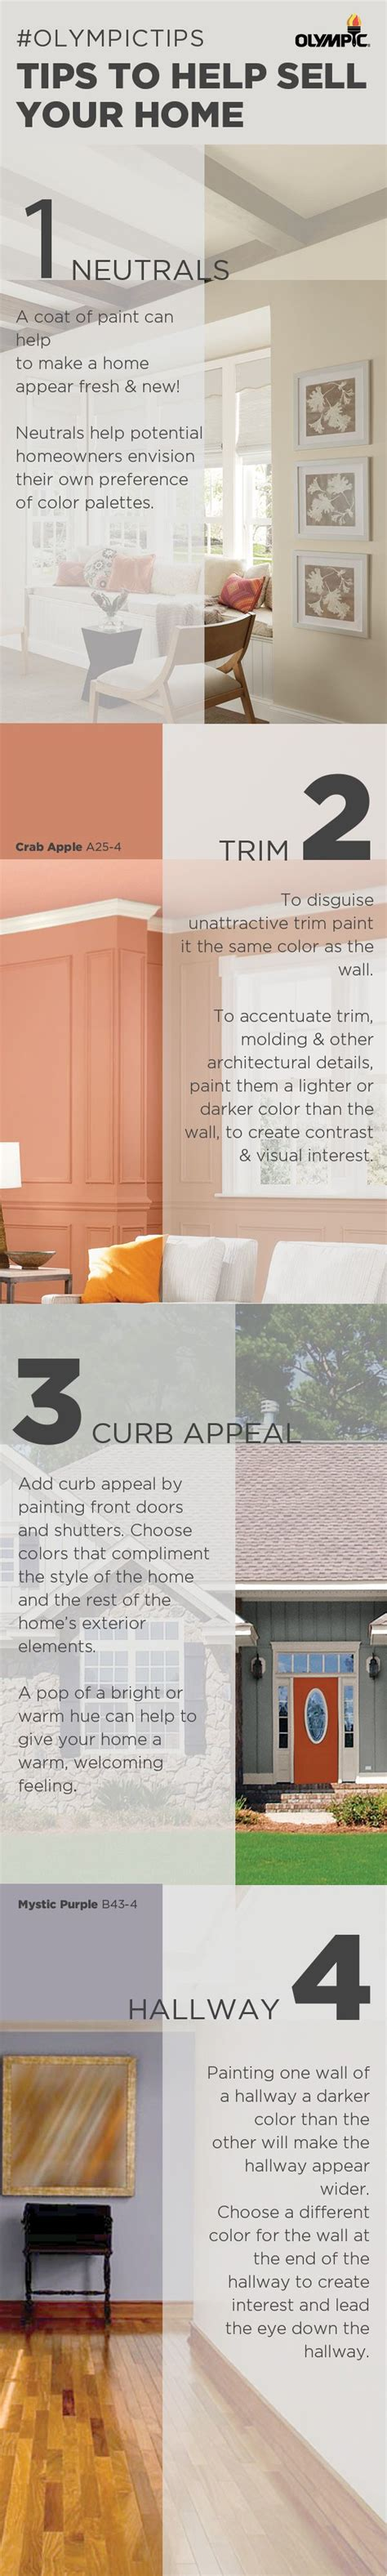 16 best images about tips to help sell your home on